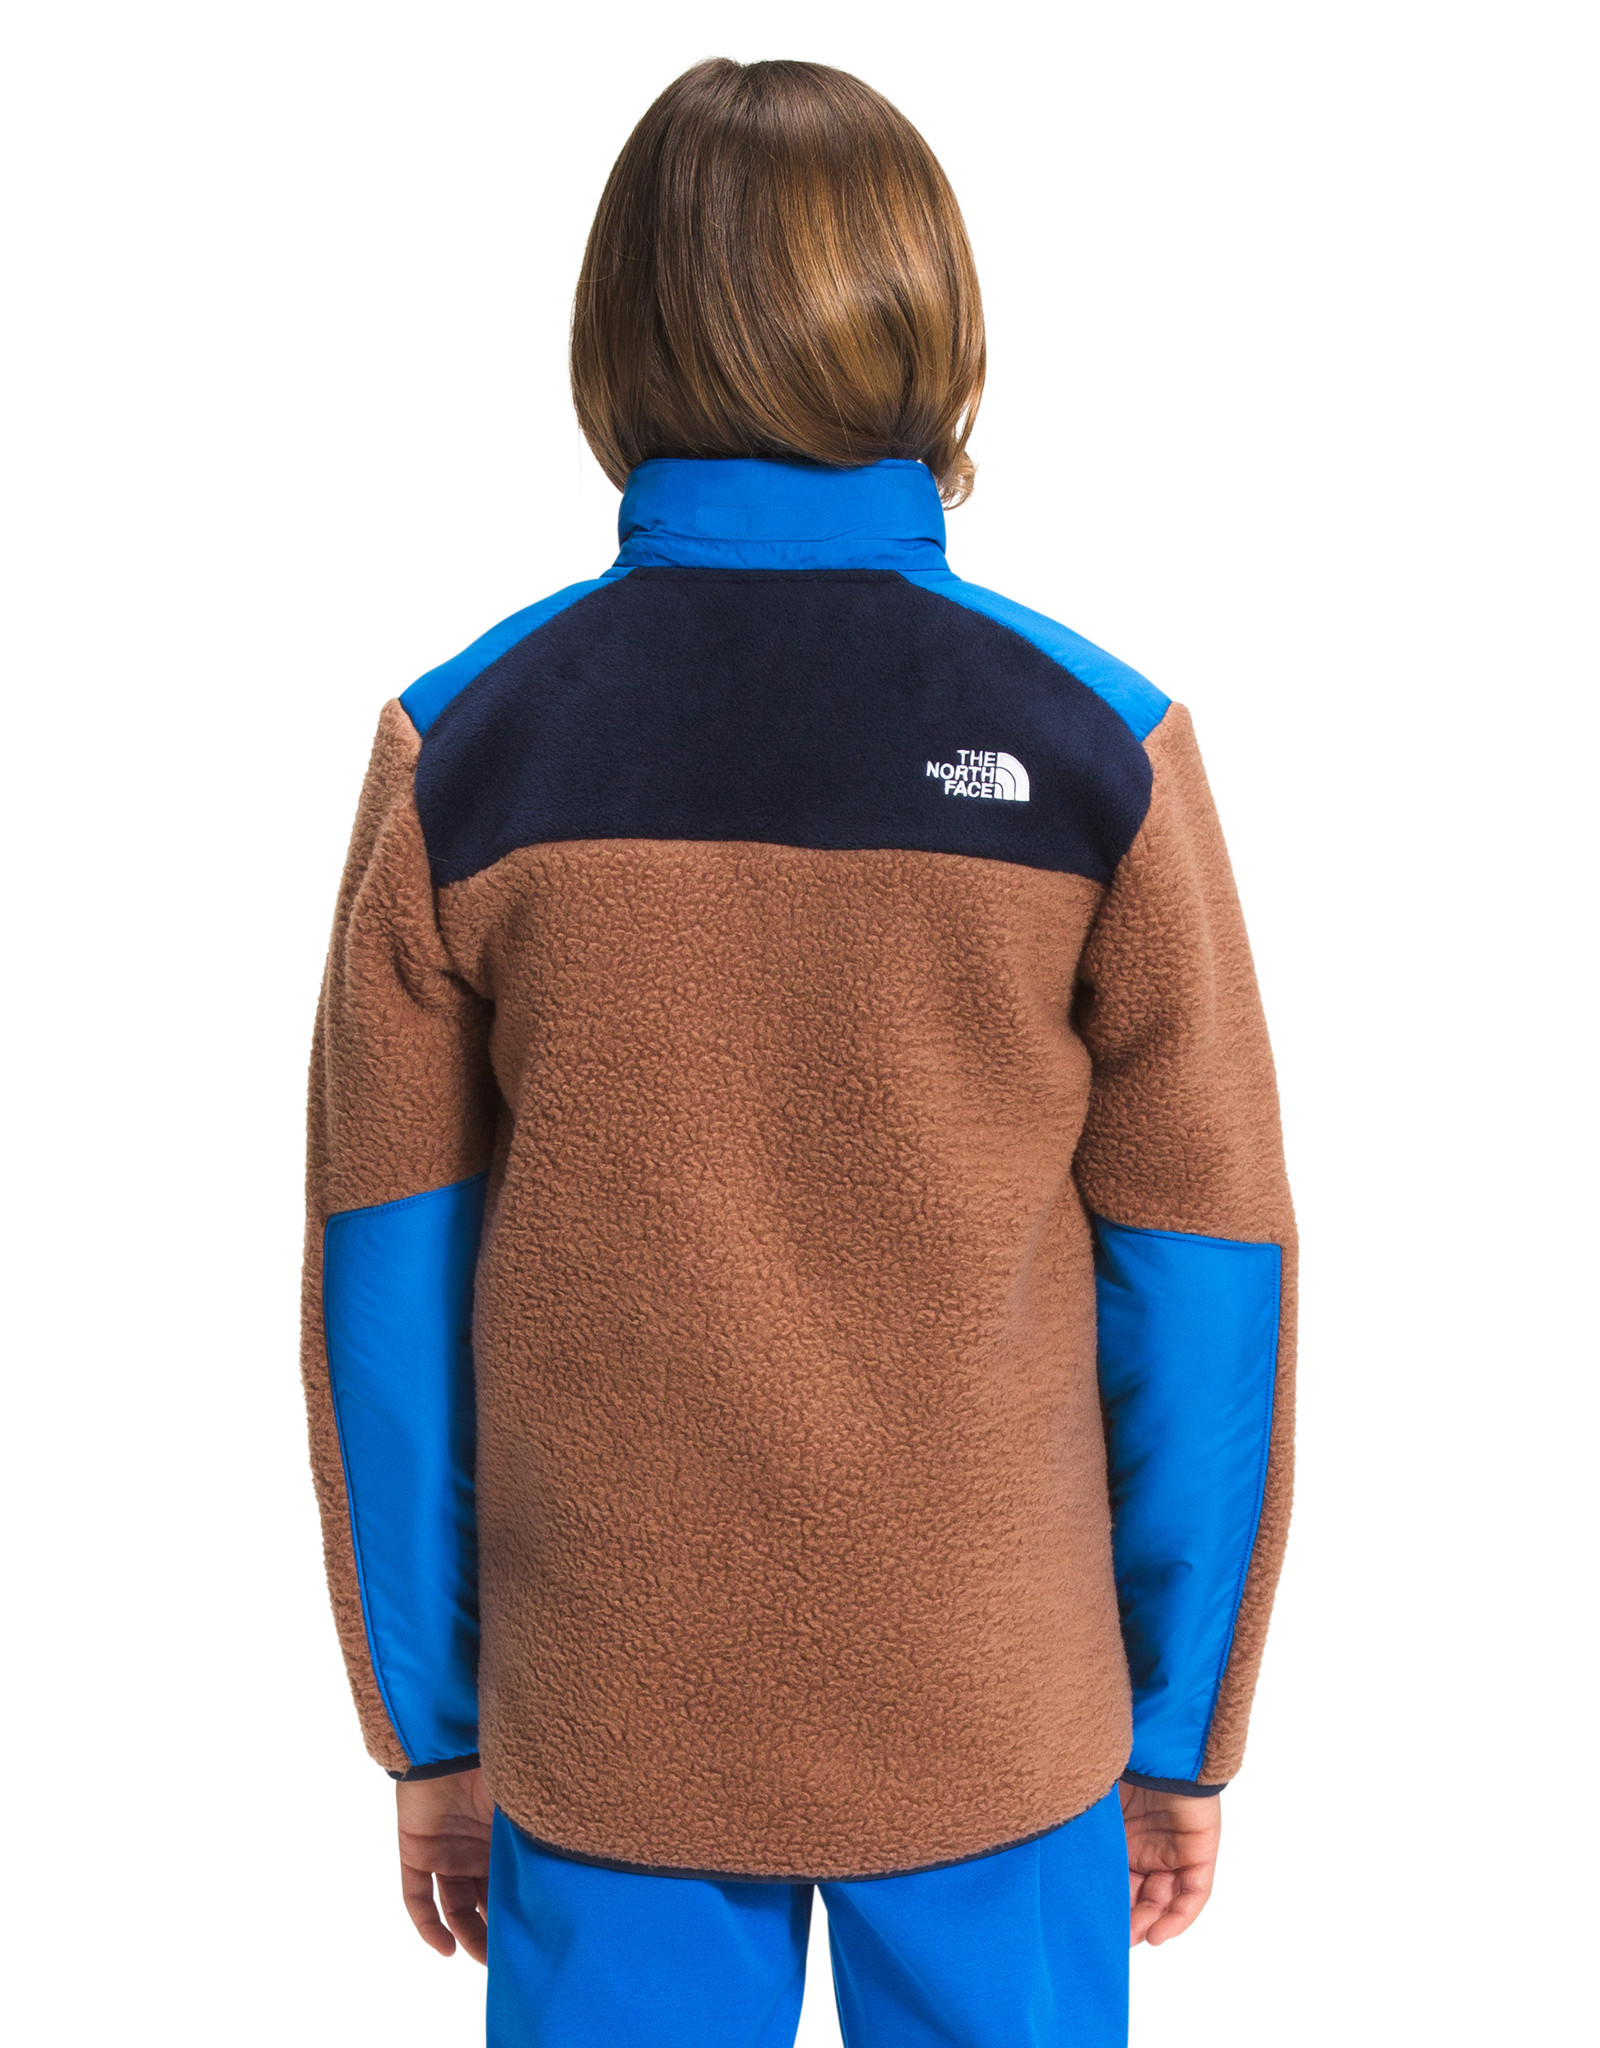 The North Face The North Face Boy's Forrest Mixed-Media Full Zip Jacket -W2022